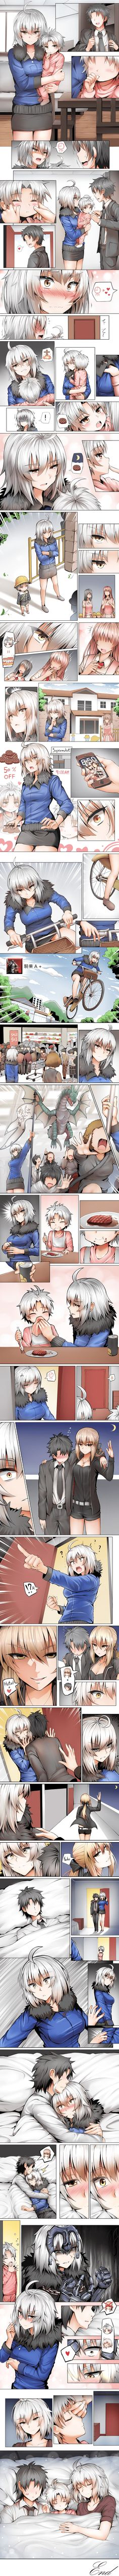 Mama Jeanne Alter is quite the overprotective and jealous mother~ But still a good mother in the end! {Artoria Pendragon Alter [Saber], Fujimaru Ritsuka and Jeanne Alter [Avenger] (Fate/Grand Order)} - 9GAG